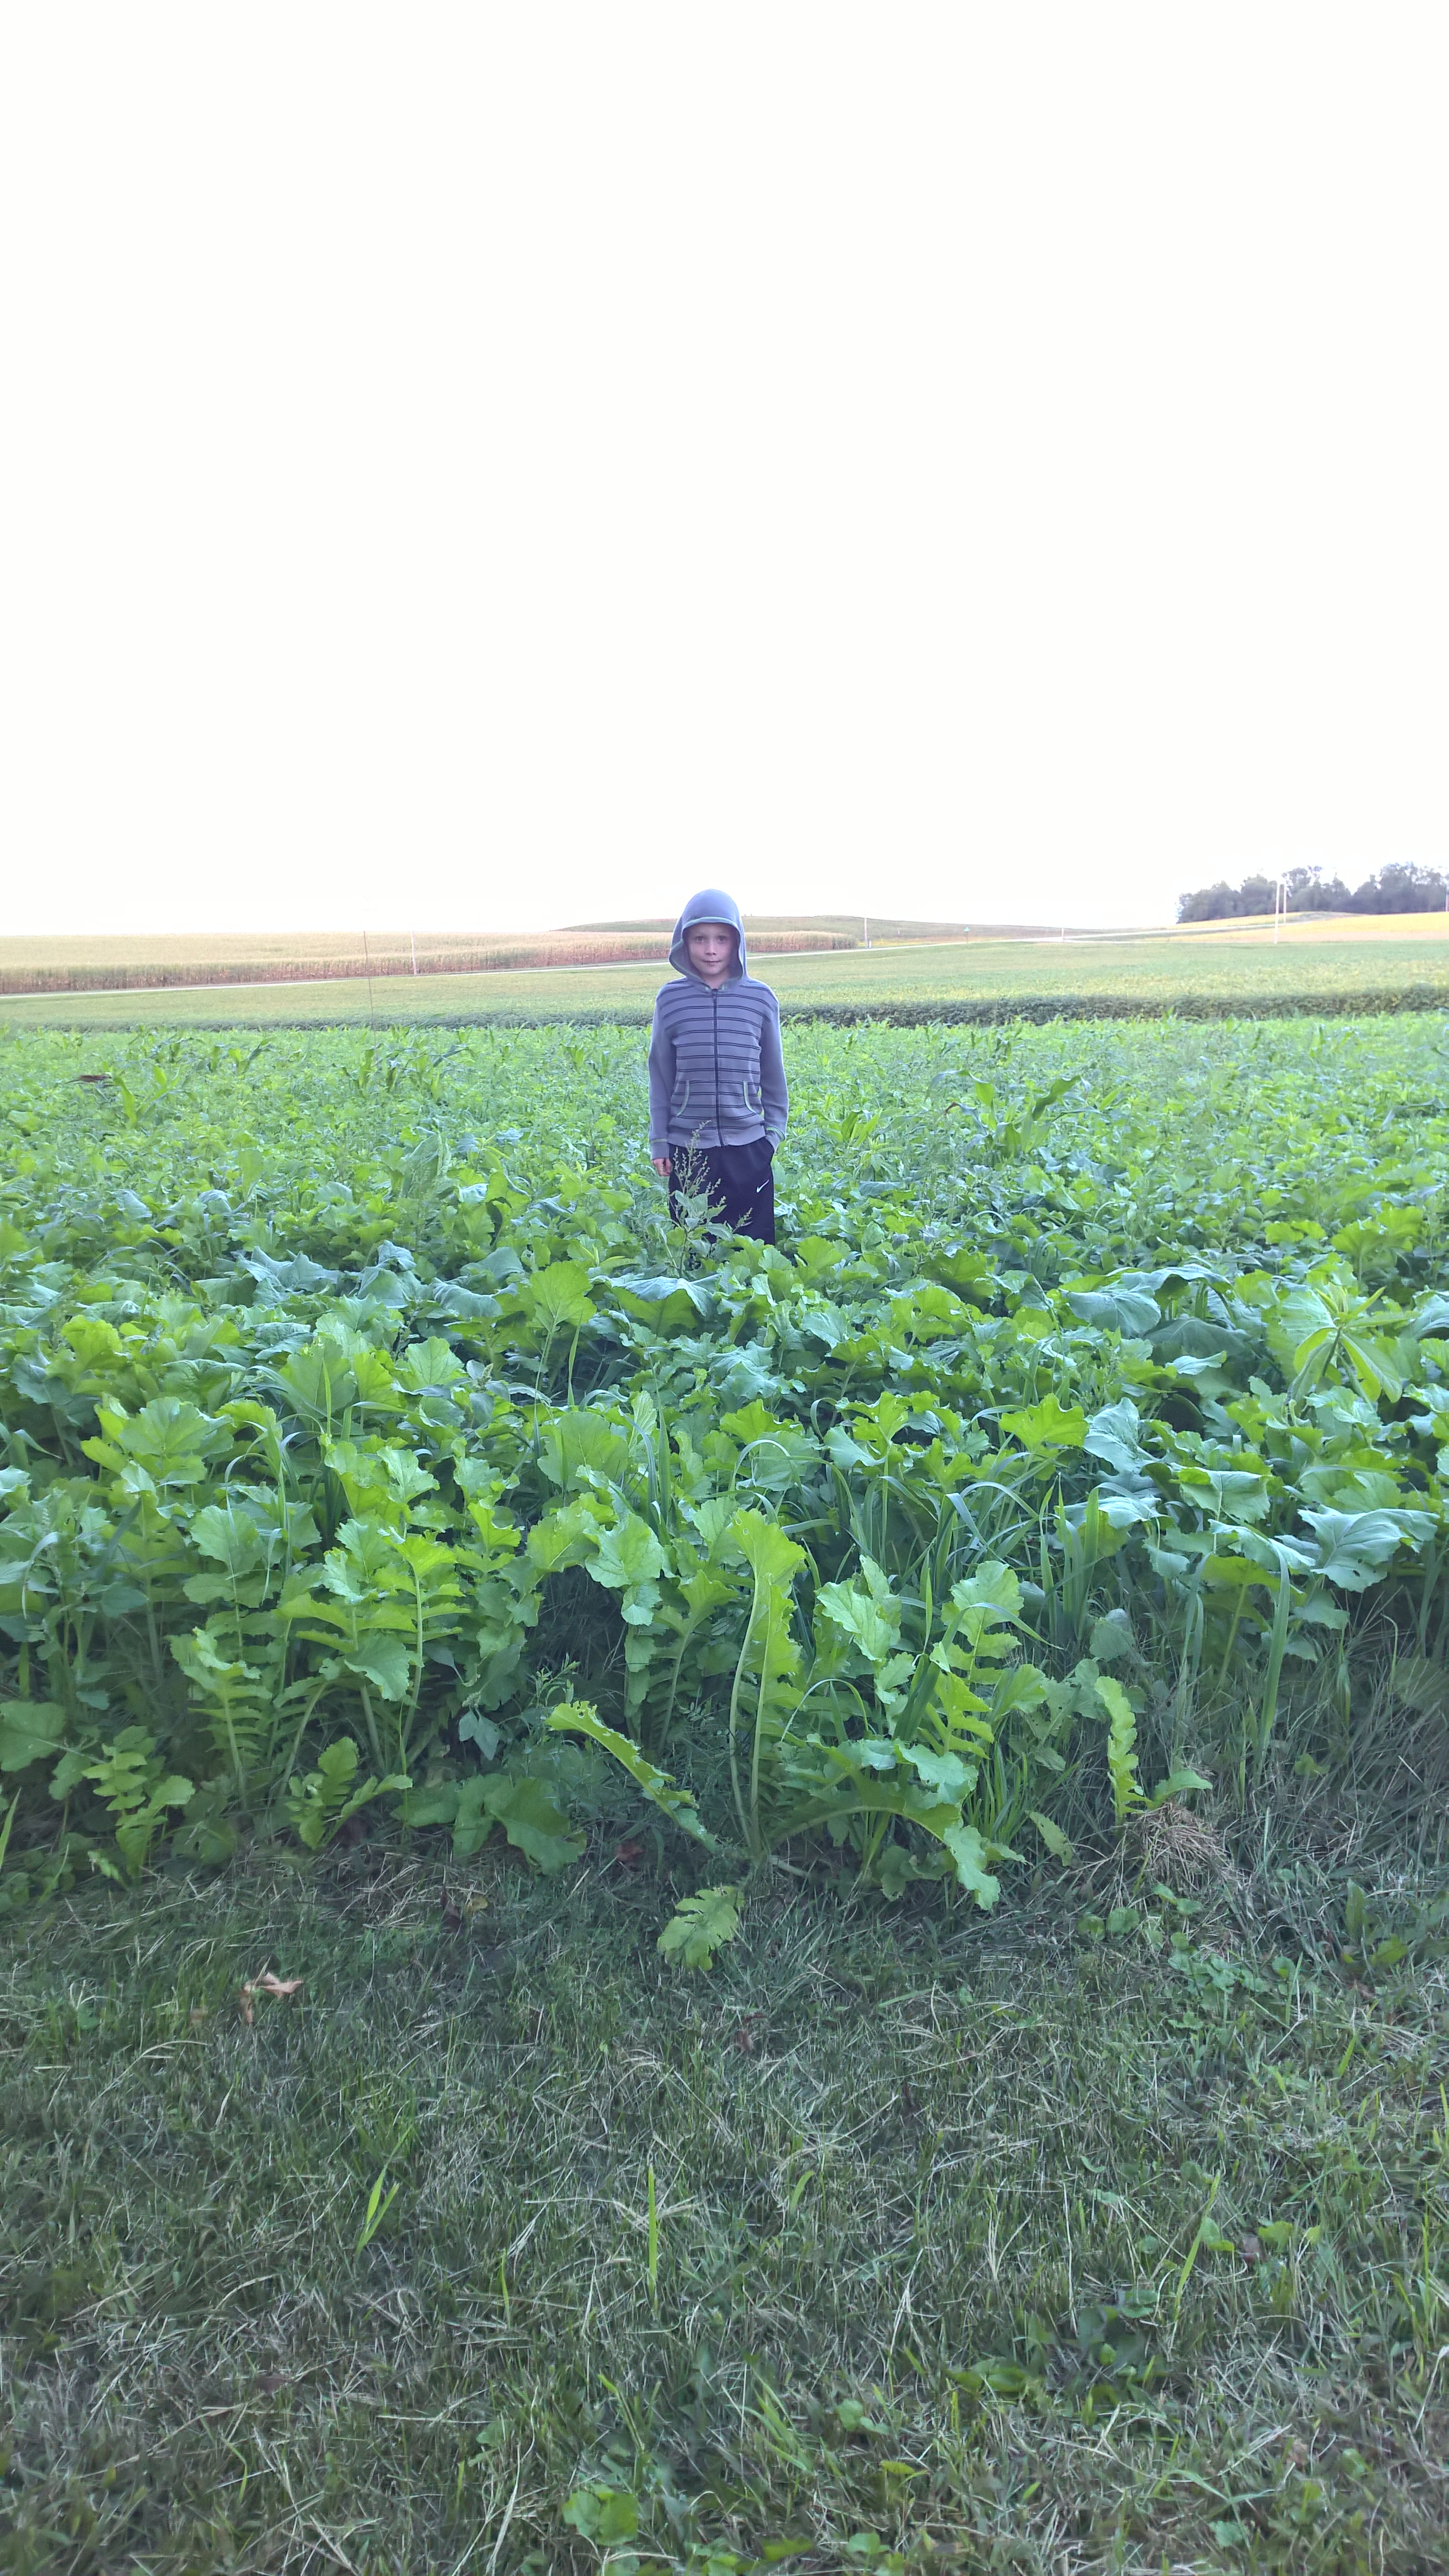 Curt's 9-year old grandson, Andrew, standing in cover crops. Curt's commitment to conservation ensures the land will be productive for future generations.